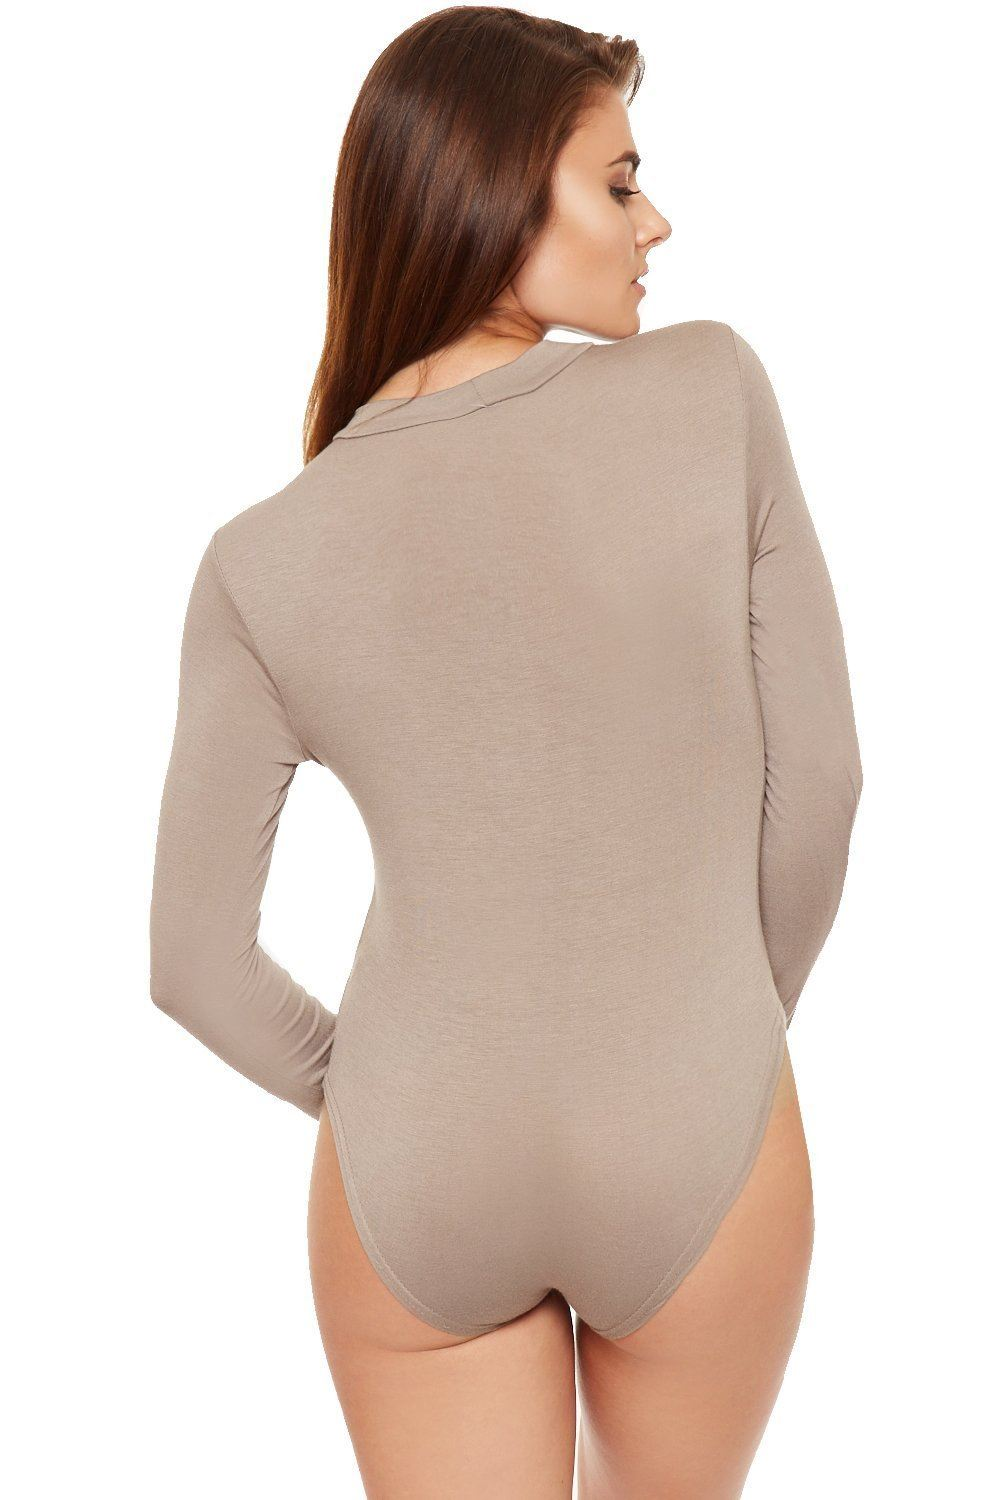 Find Women's Long Sleeve Shirts at urgut.ga Enjoy free shipping and returns with NikePlus.